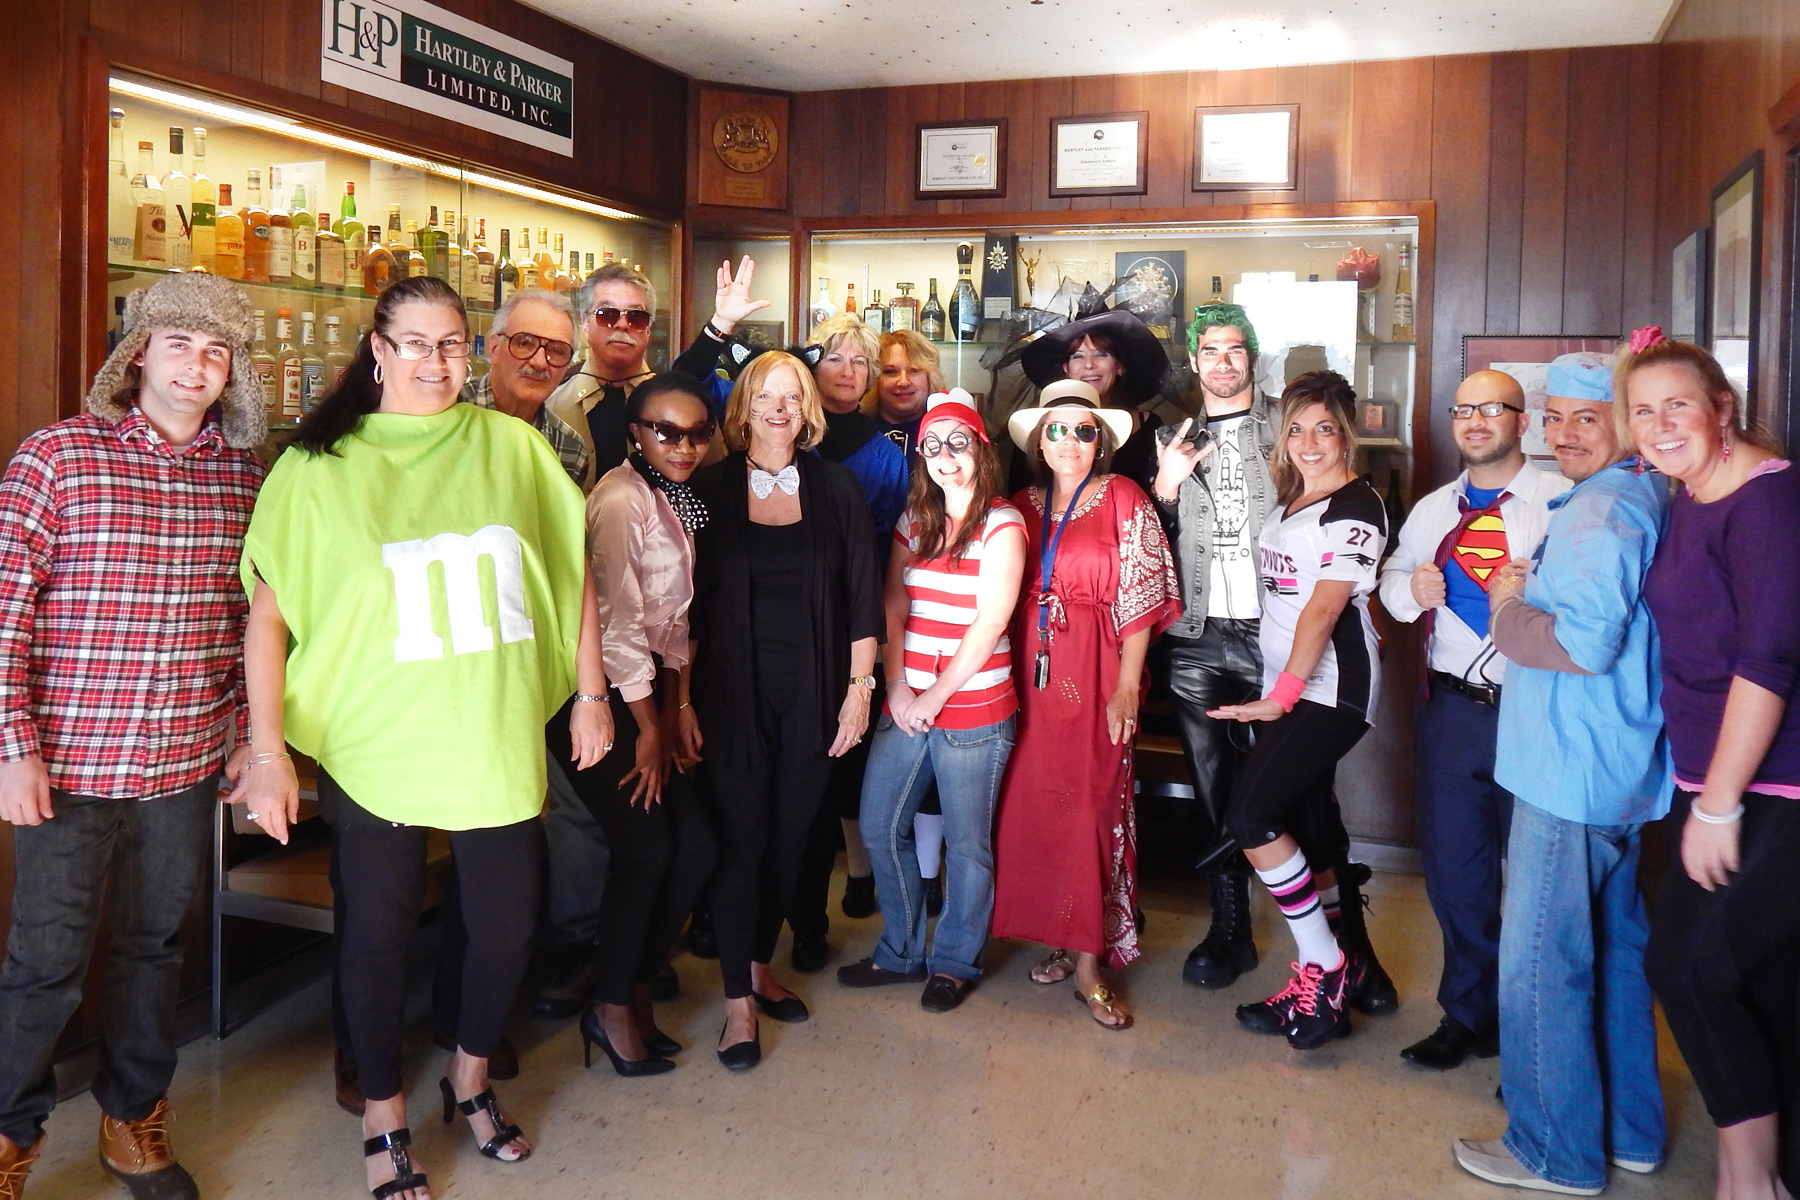 hartley parker employees get spirited on halloween